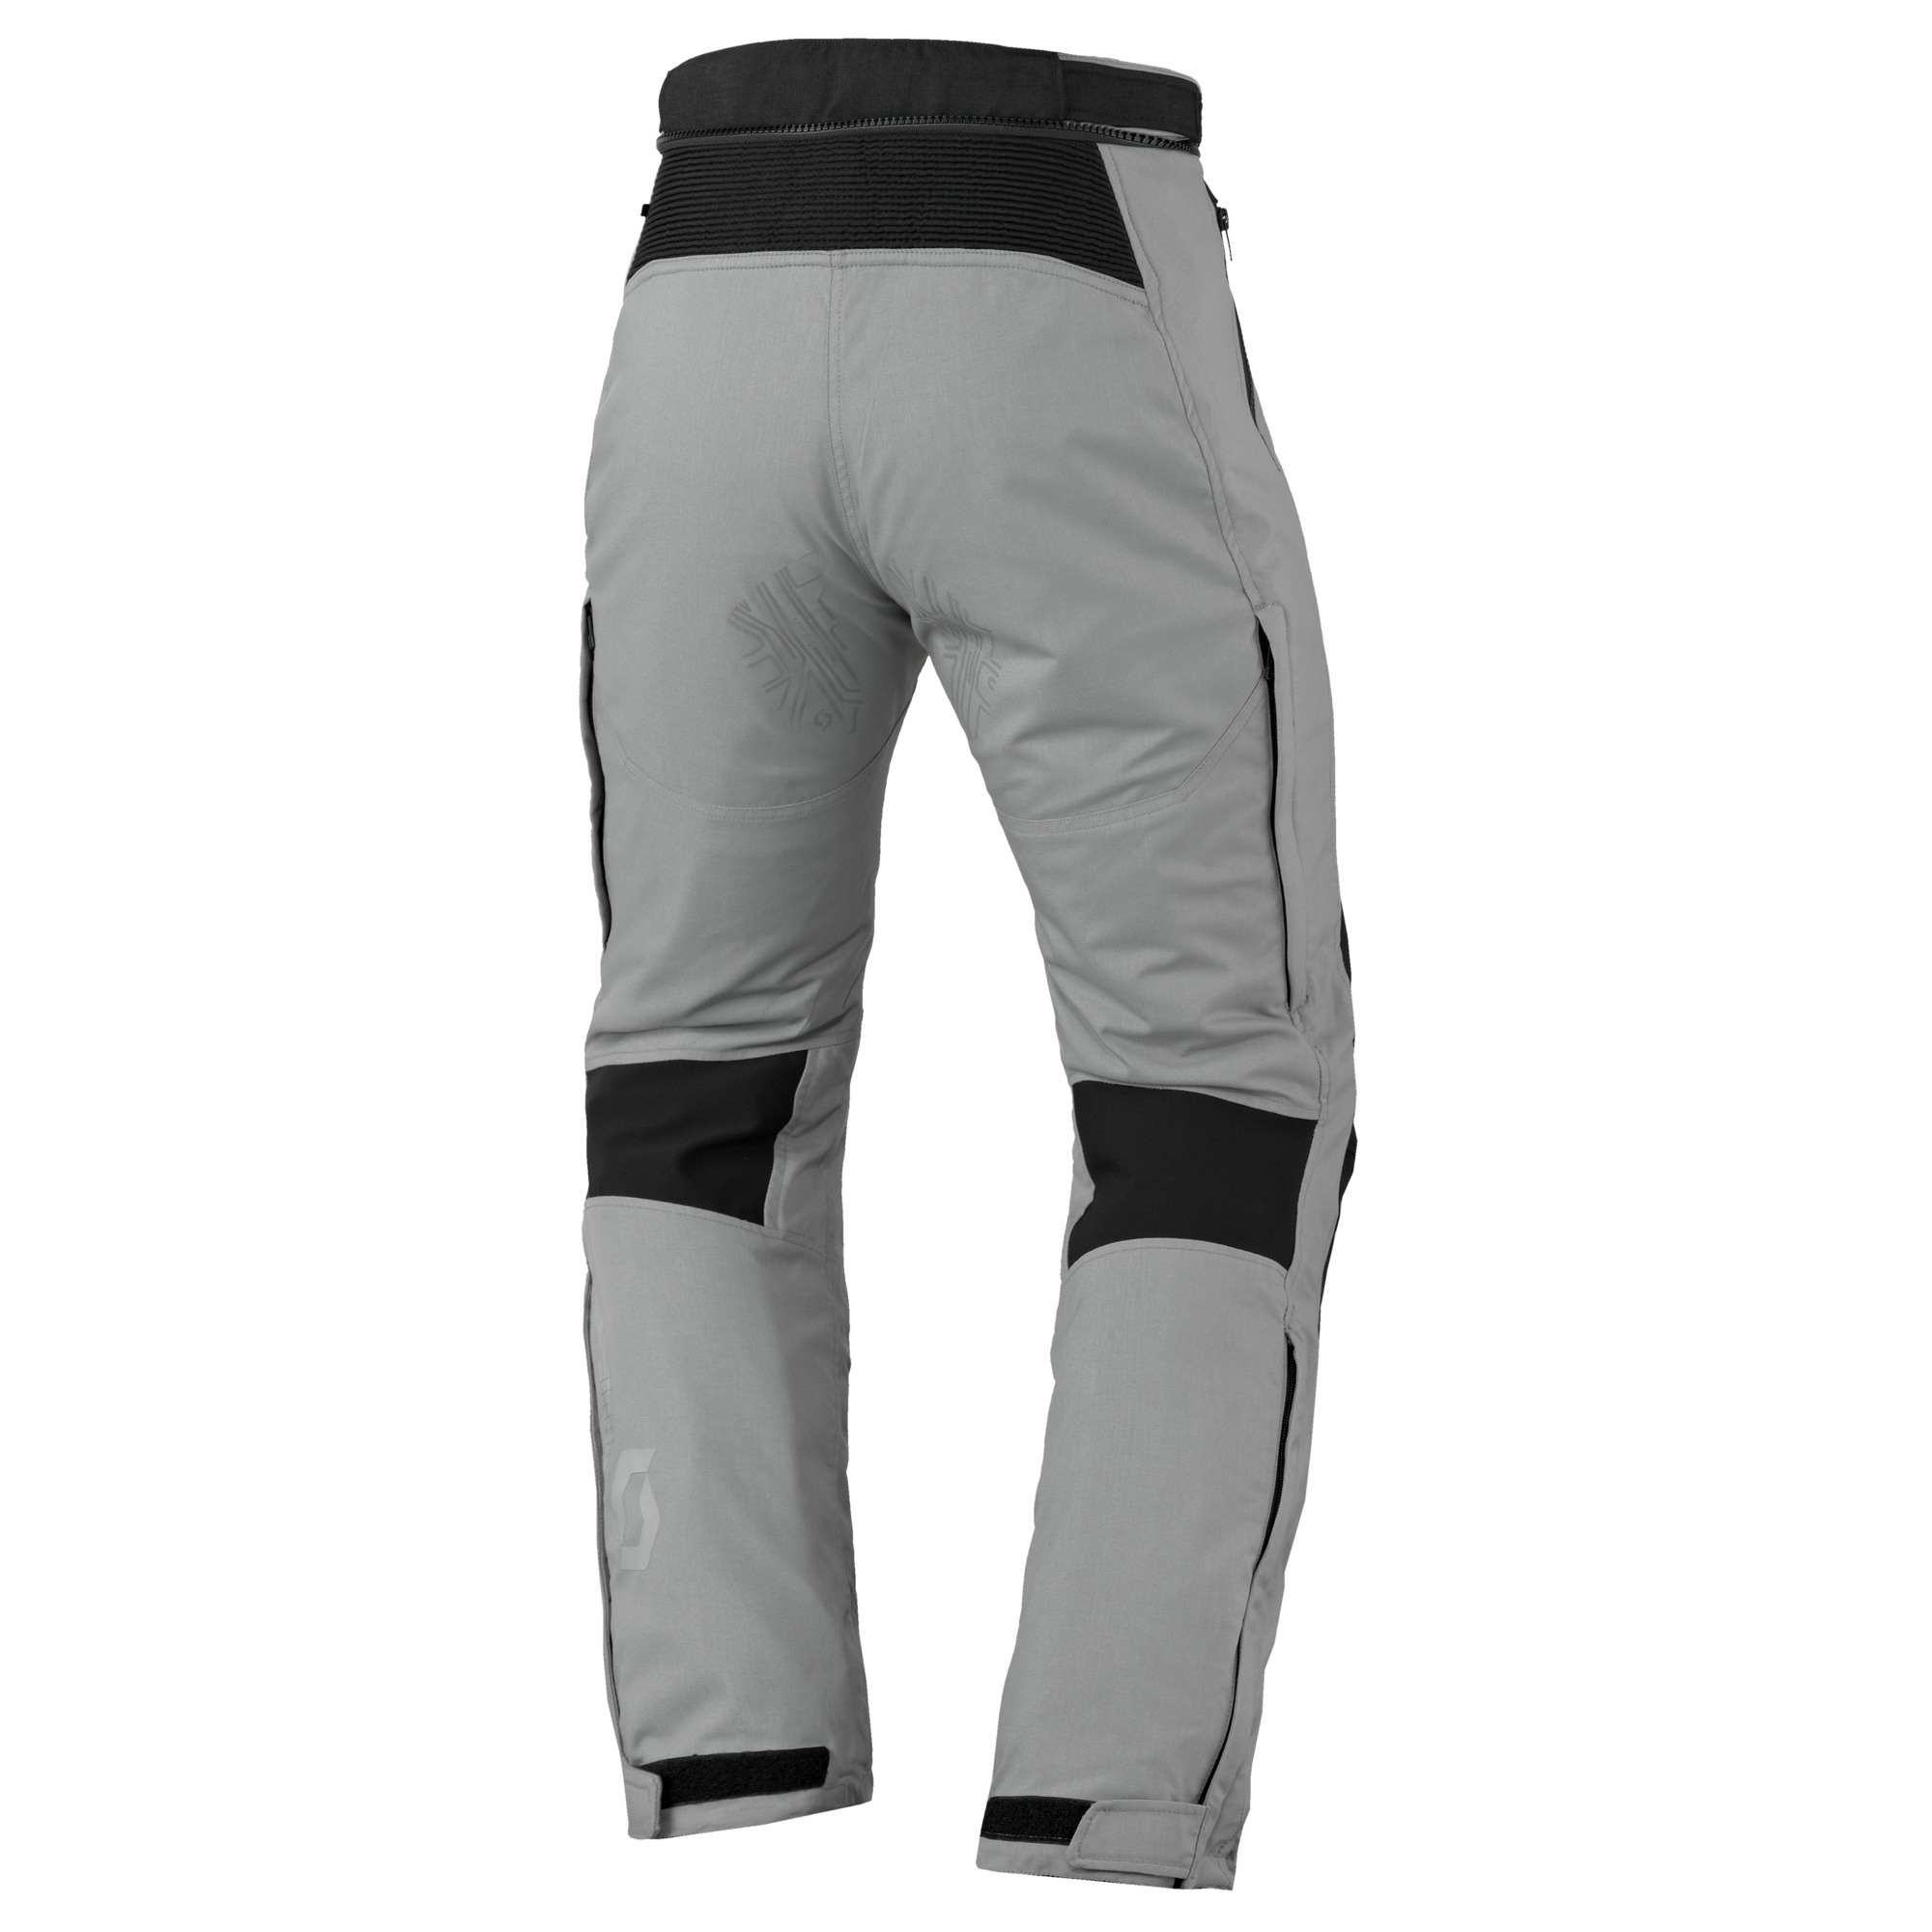 SCOTT Turn ADV DP Women's Pant